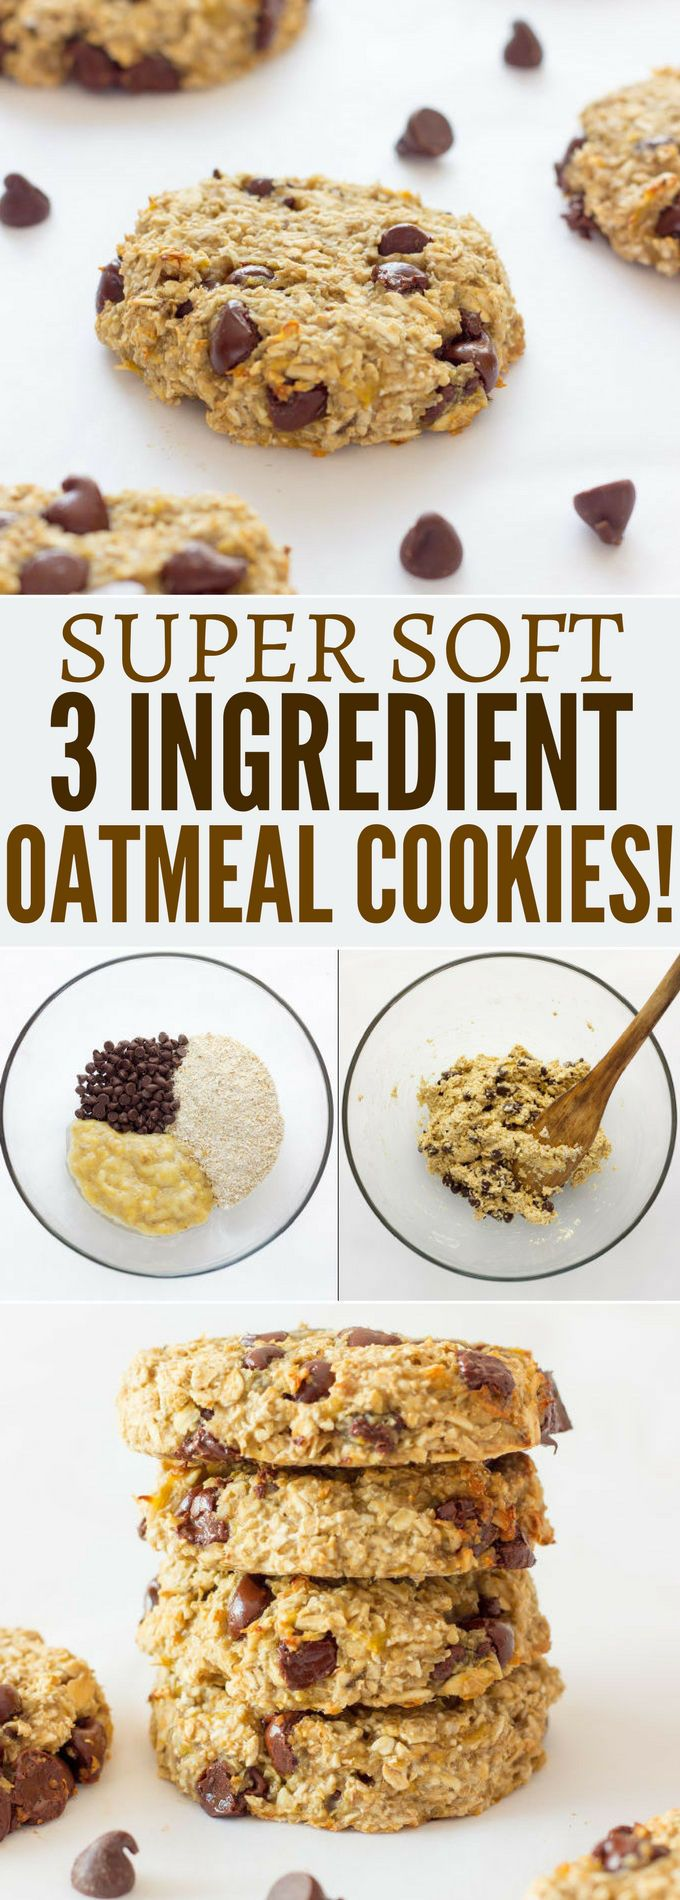 Ready under 20 minutes, these healthy, chewy and soft banana & oatmeal cookies are made with only 3 simple ingredients. They are a very simple and light version of the traditional oatmeal cookie with added dark chocolate chips. Flourless, eggless, low-calorie and low-fat these delicious cookies are made without butter, brown sugar or baking soda. Most homemade traditional oatmeal cookie recipes require that the dough is chilled before cooking, well, no need to refrigerate the...